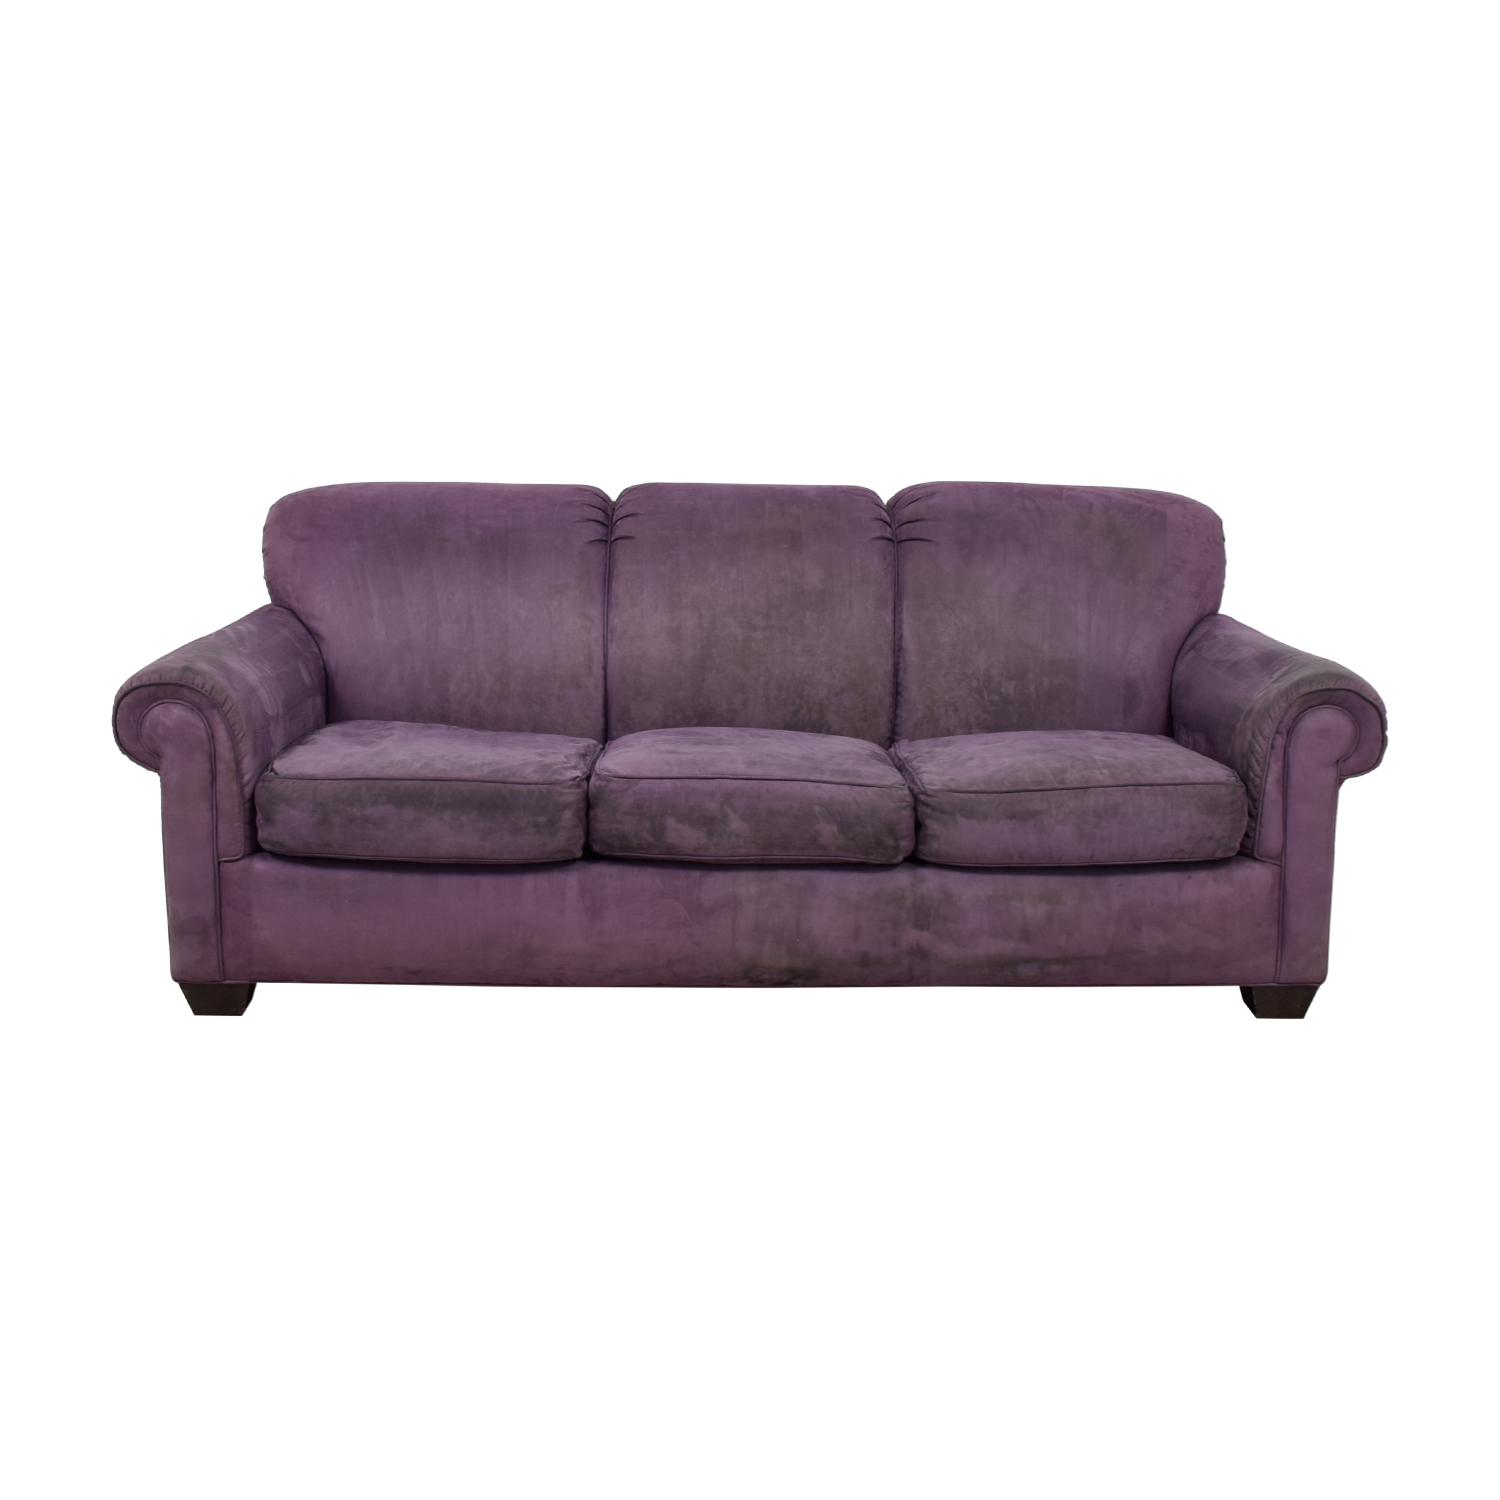 Rowe Rowe Purple Three-Cushion Sofa price